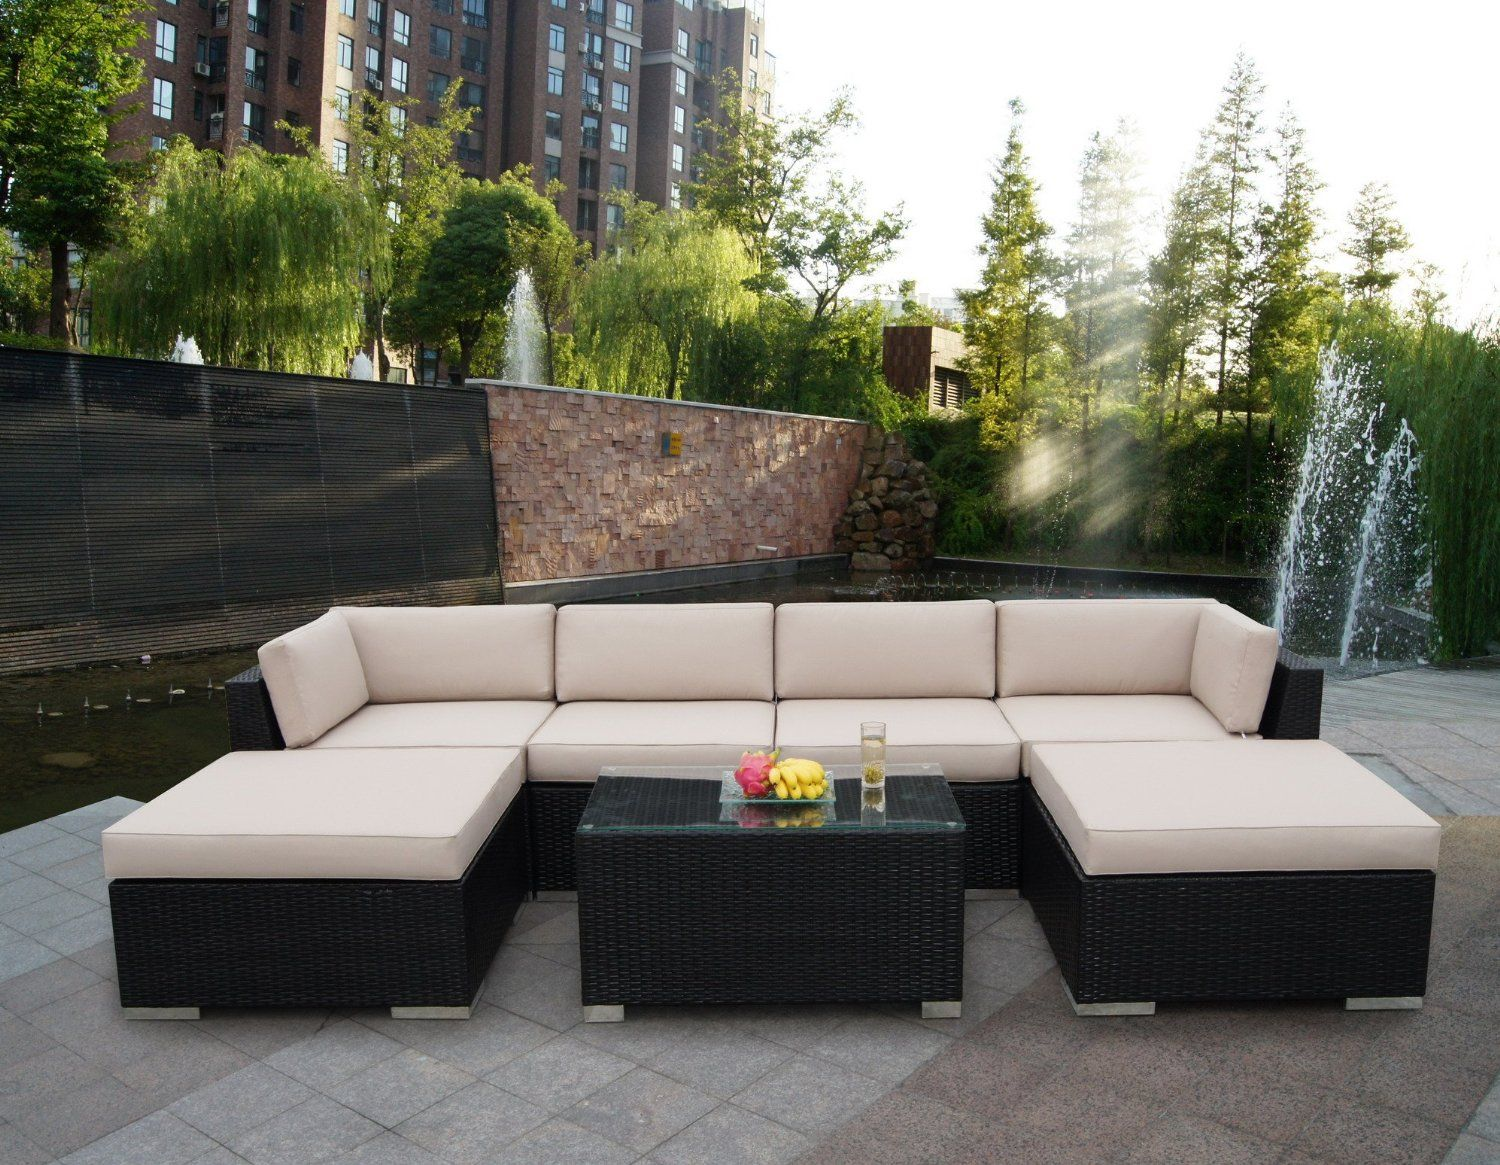 awesome fresh patio outdoor furniture 72 in interior decor home with patio outdoor furniture. Black Bedroom Furniture Sets. Home Design Ideas